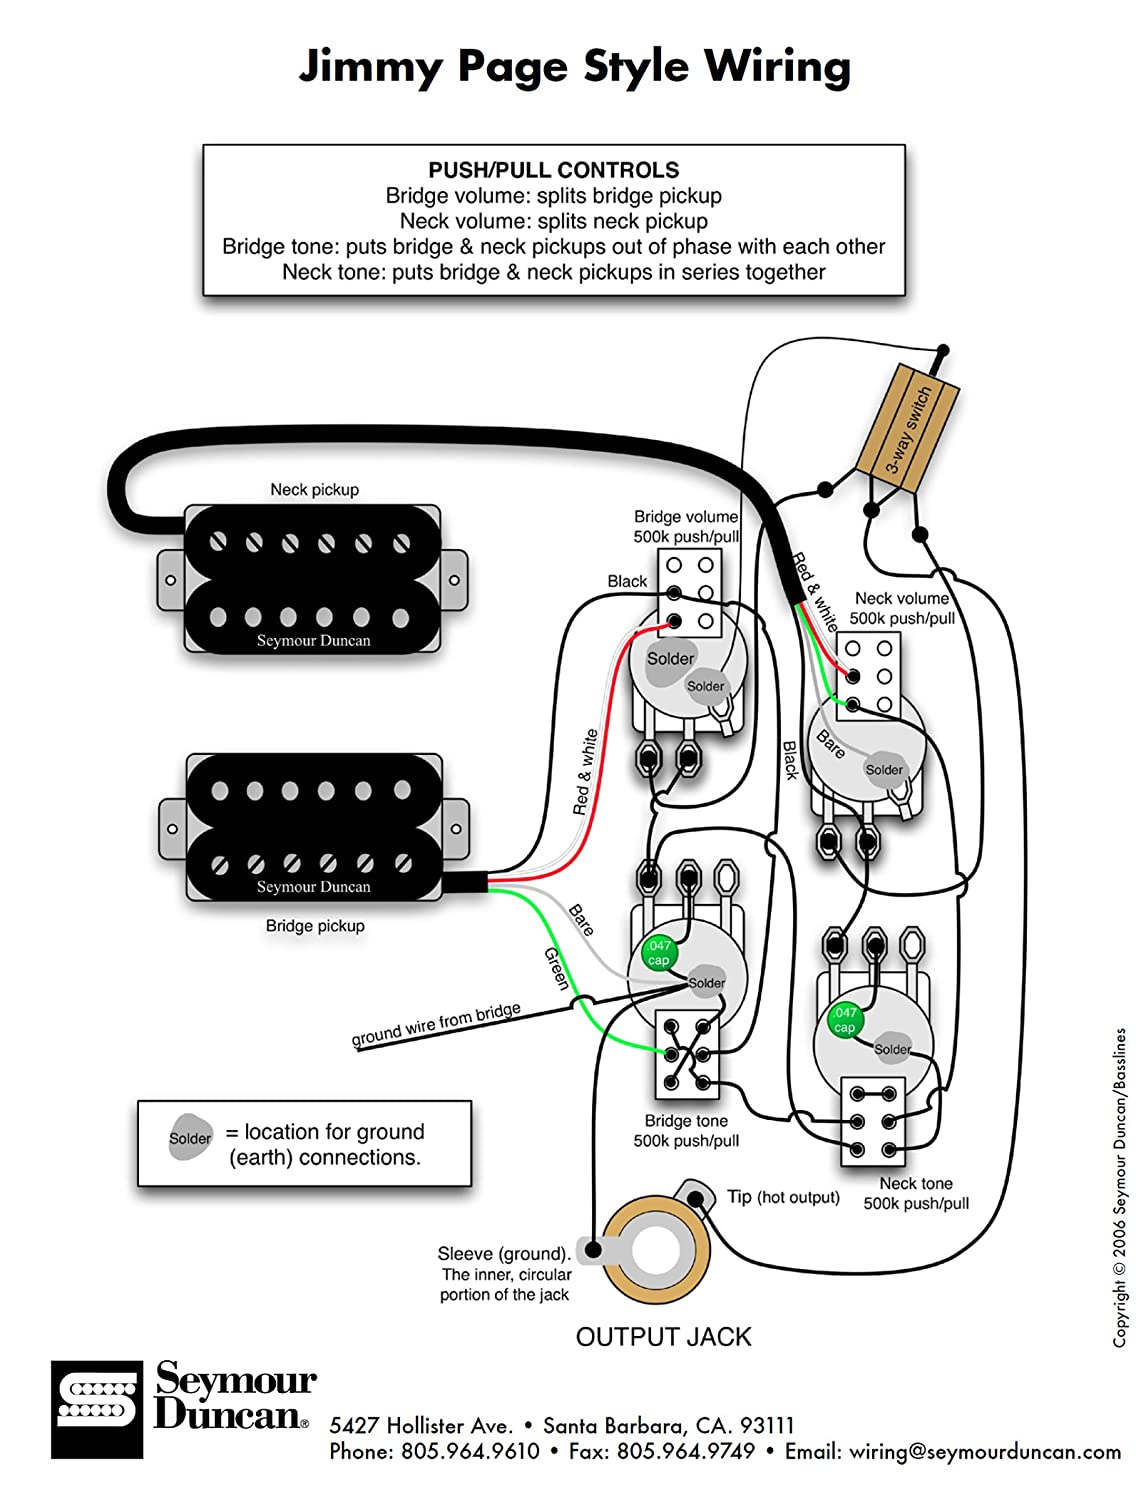 920d Custom Shop Les Paul Jimmy Page Wiring Harness W 1977 Fender Stratocaster Diagram 5 Way Switch Switchcraft Toggle Musical Instruments